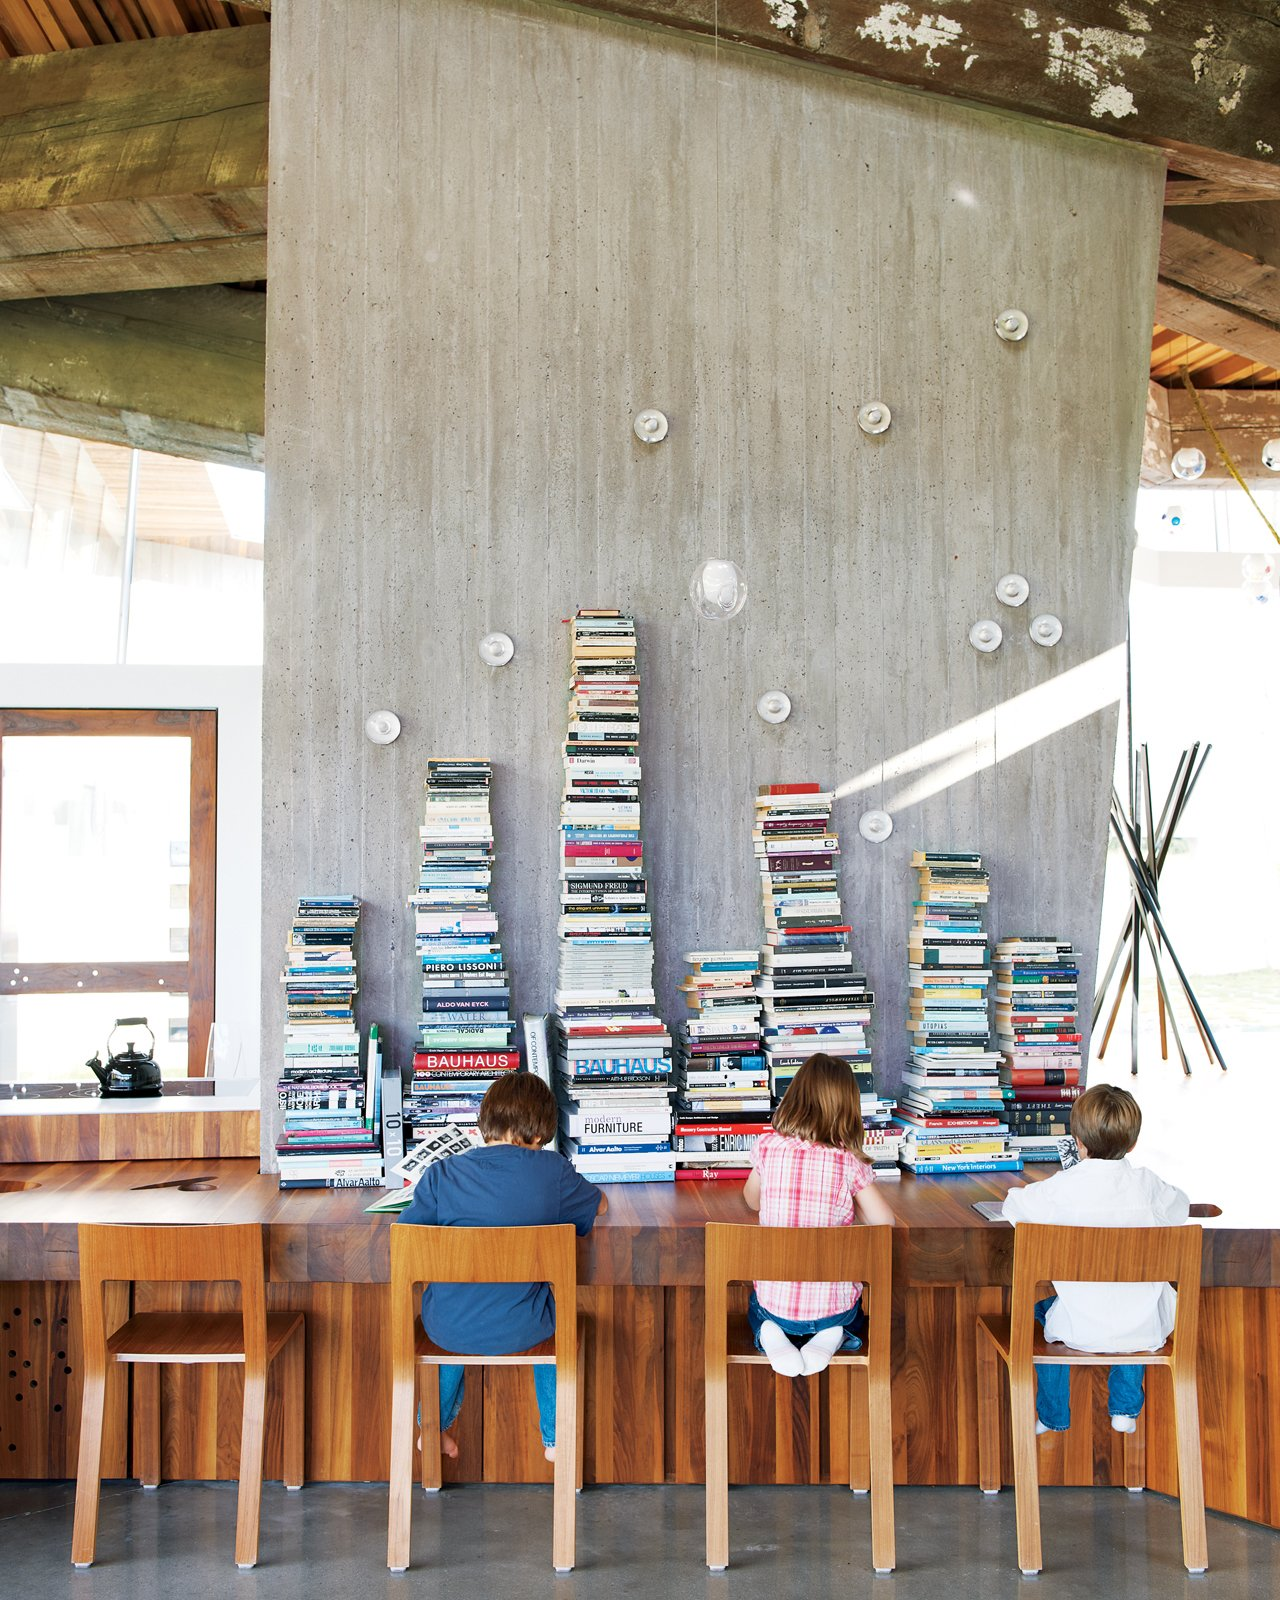 Impromptu reading time in the open-plan kitchen is encouraged. Tagged: Dining Room, Table, Concrete Floor, and Chair.  23.2 House by Jordan Kushins